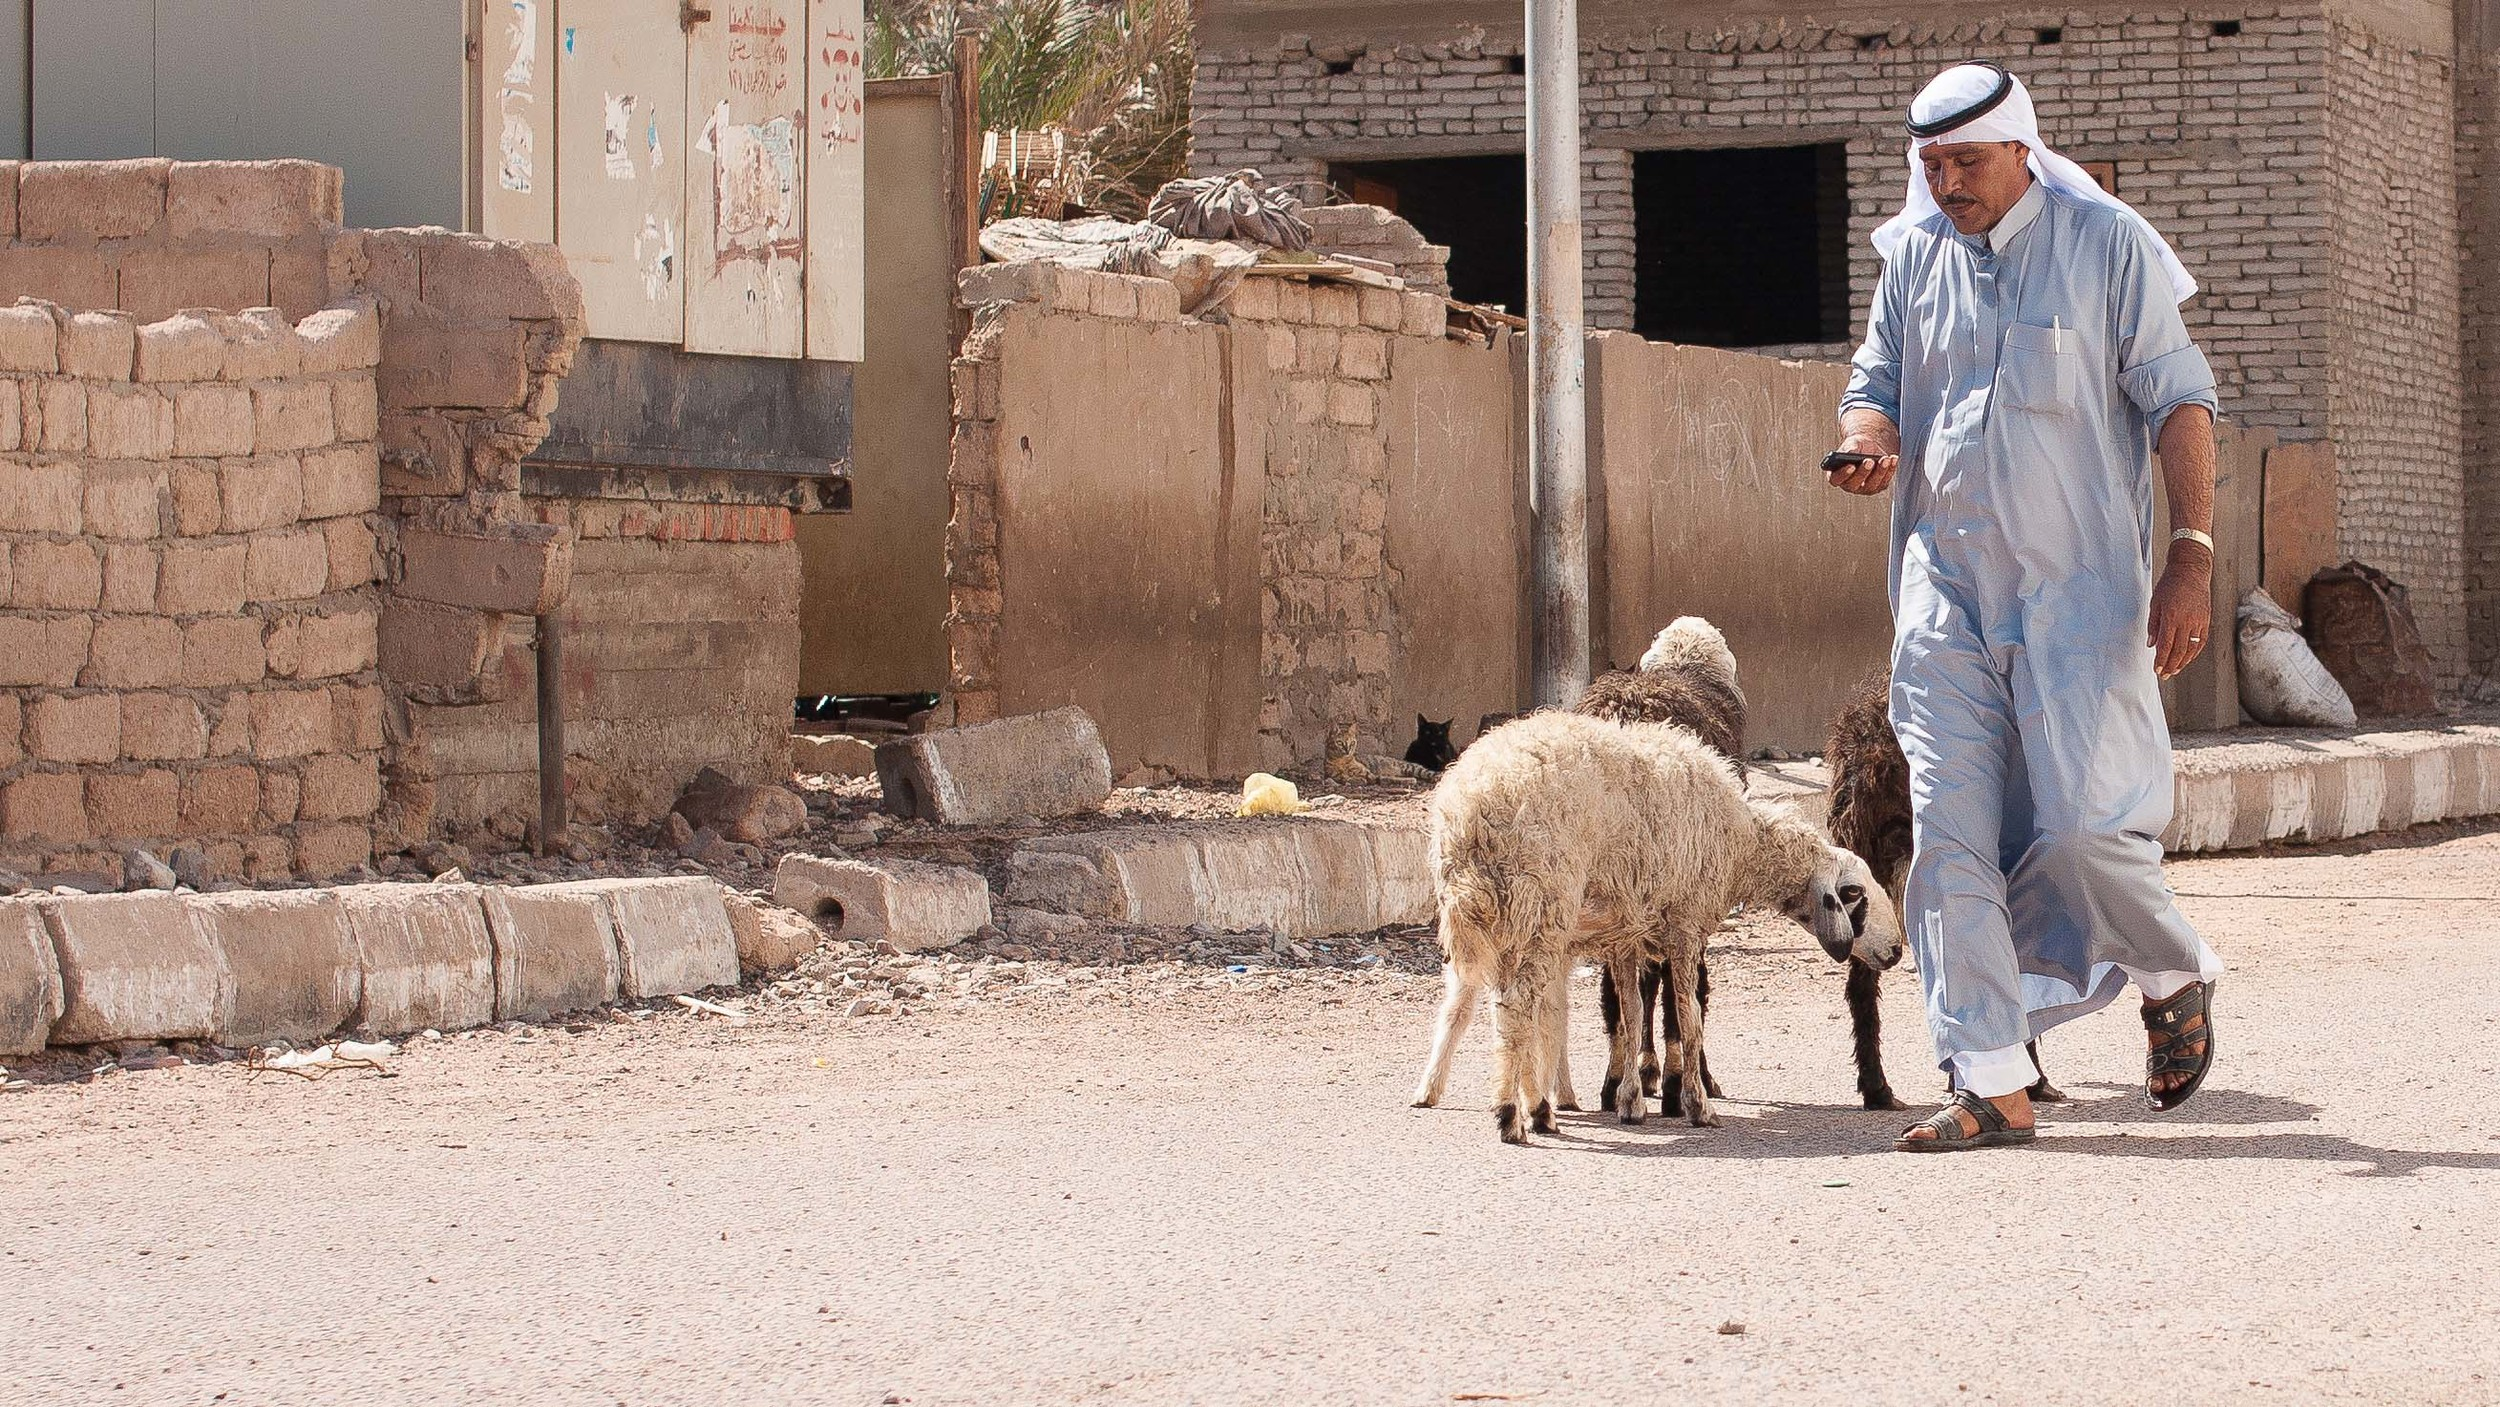 A Bedouin man texts on his phone as he passes goats in the street.